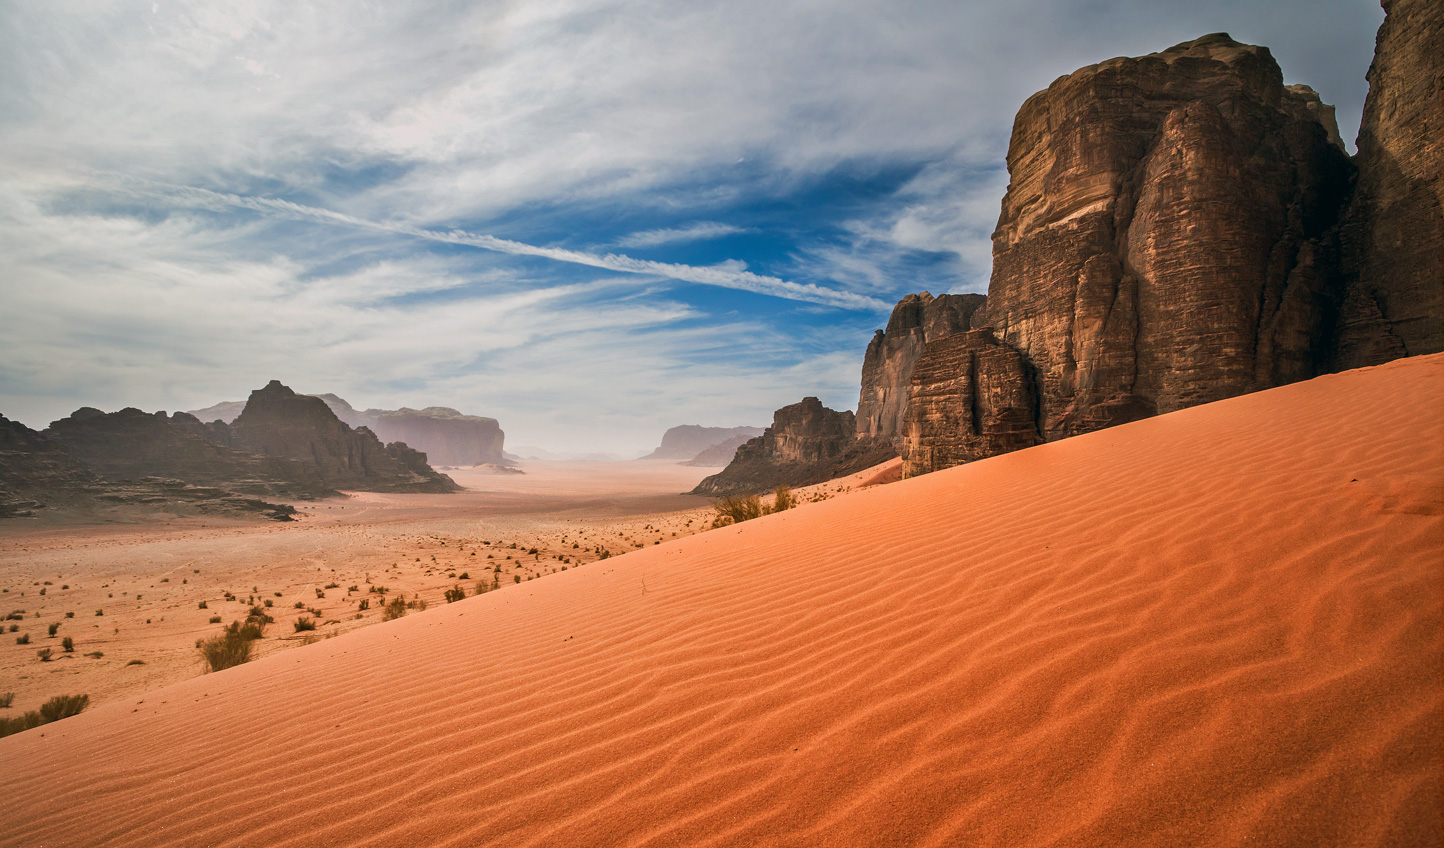 Explore the sand swathed valleys of Wadi Rum